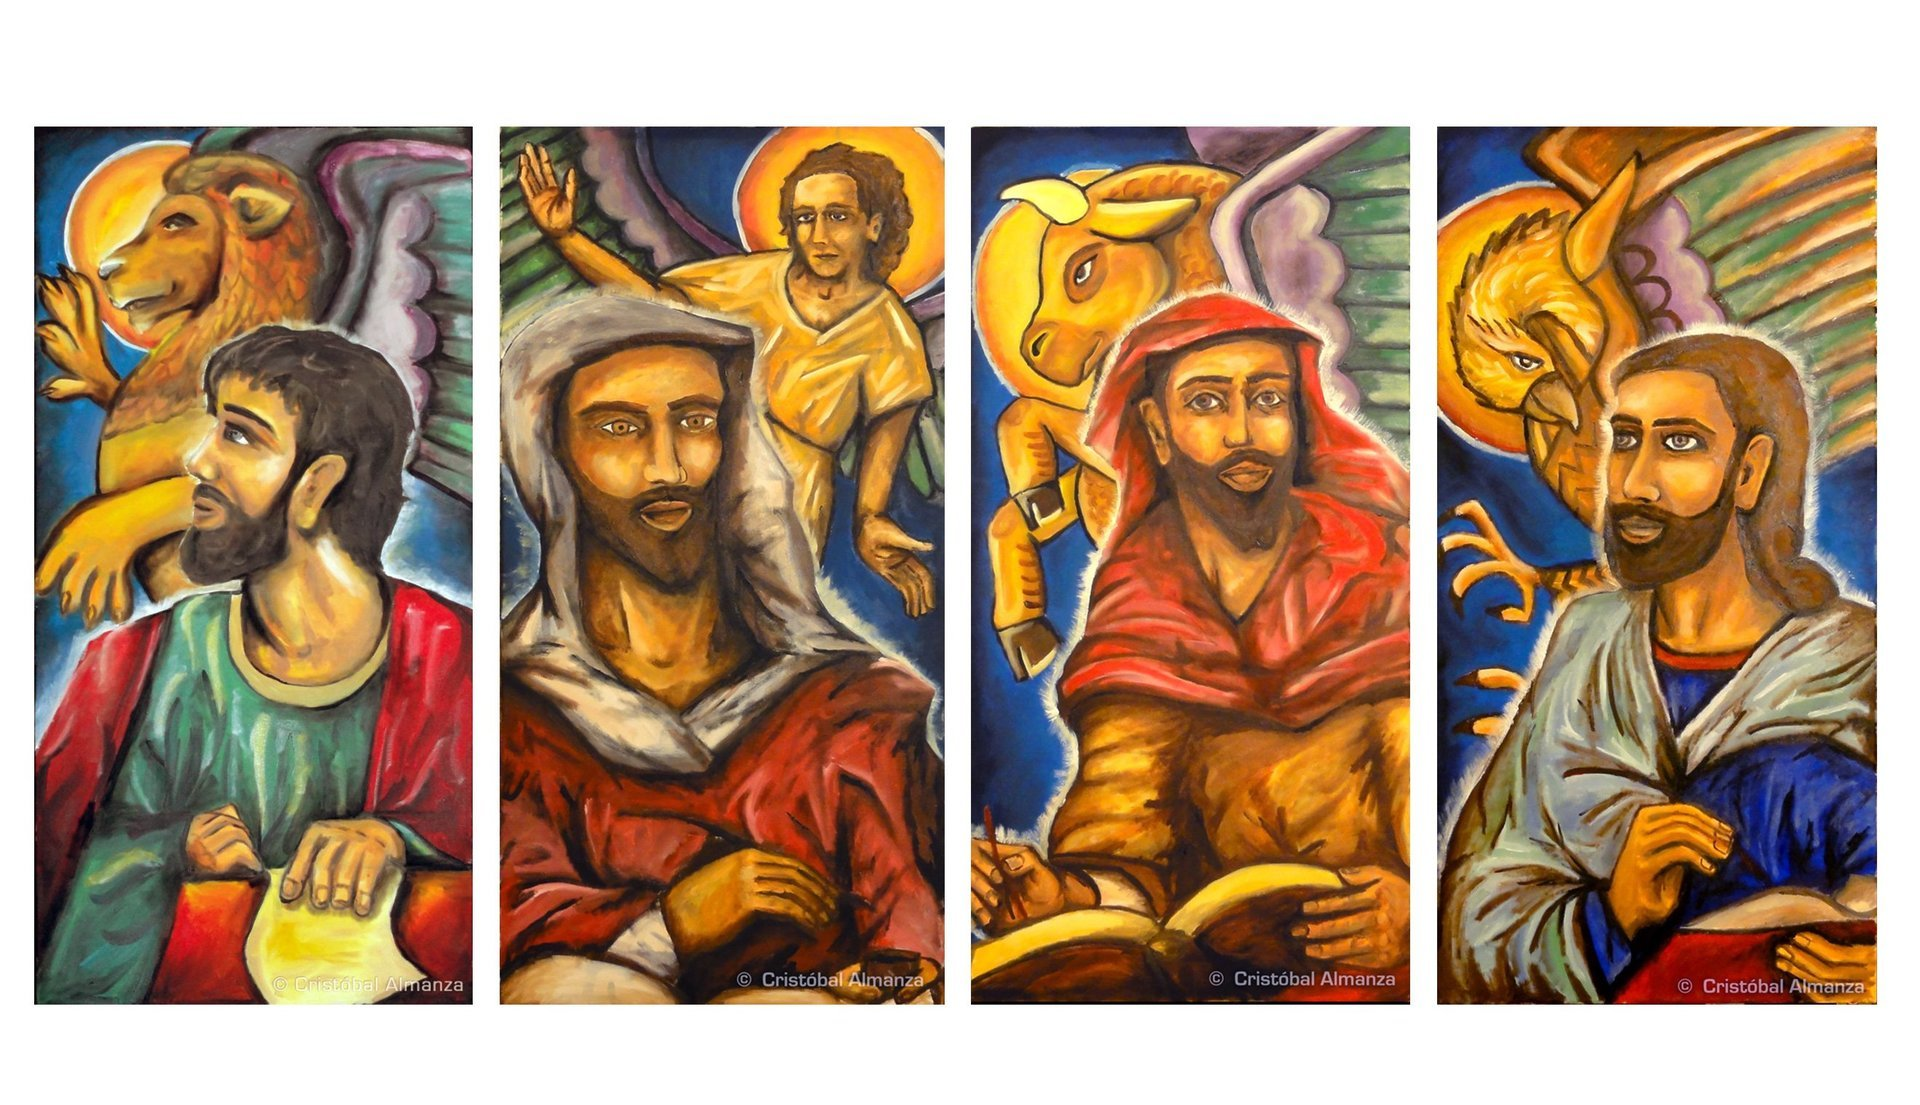 The four evangelists in the early church the four living creatures that encircle gods throne in the book of revelation 47 8 became symbols for the evangelists buycottarizona Choice Image